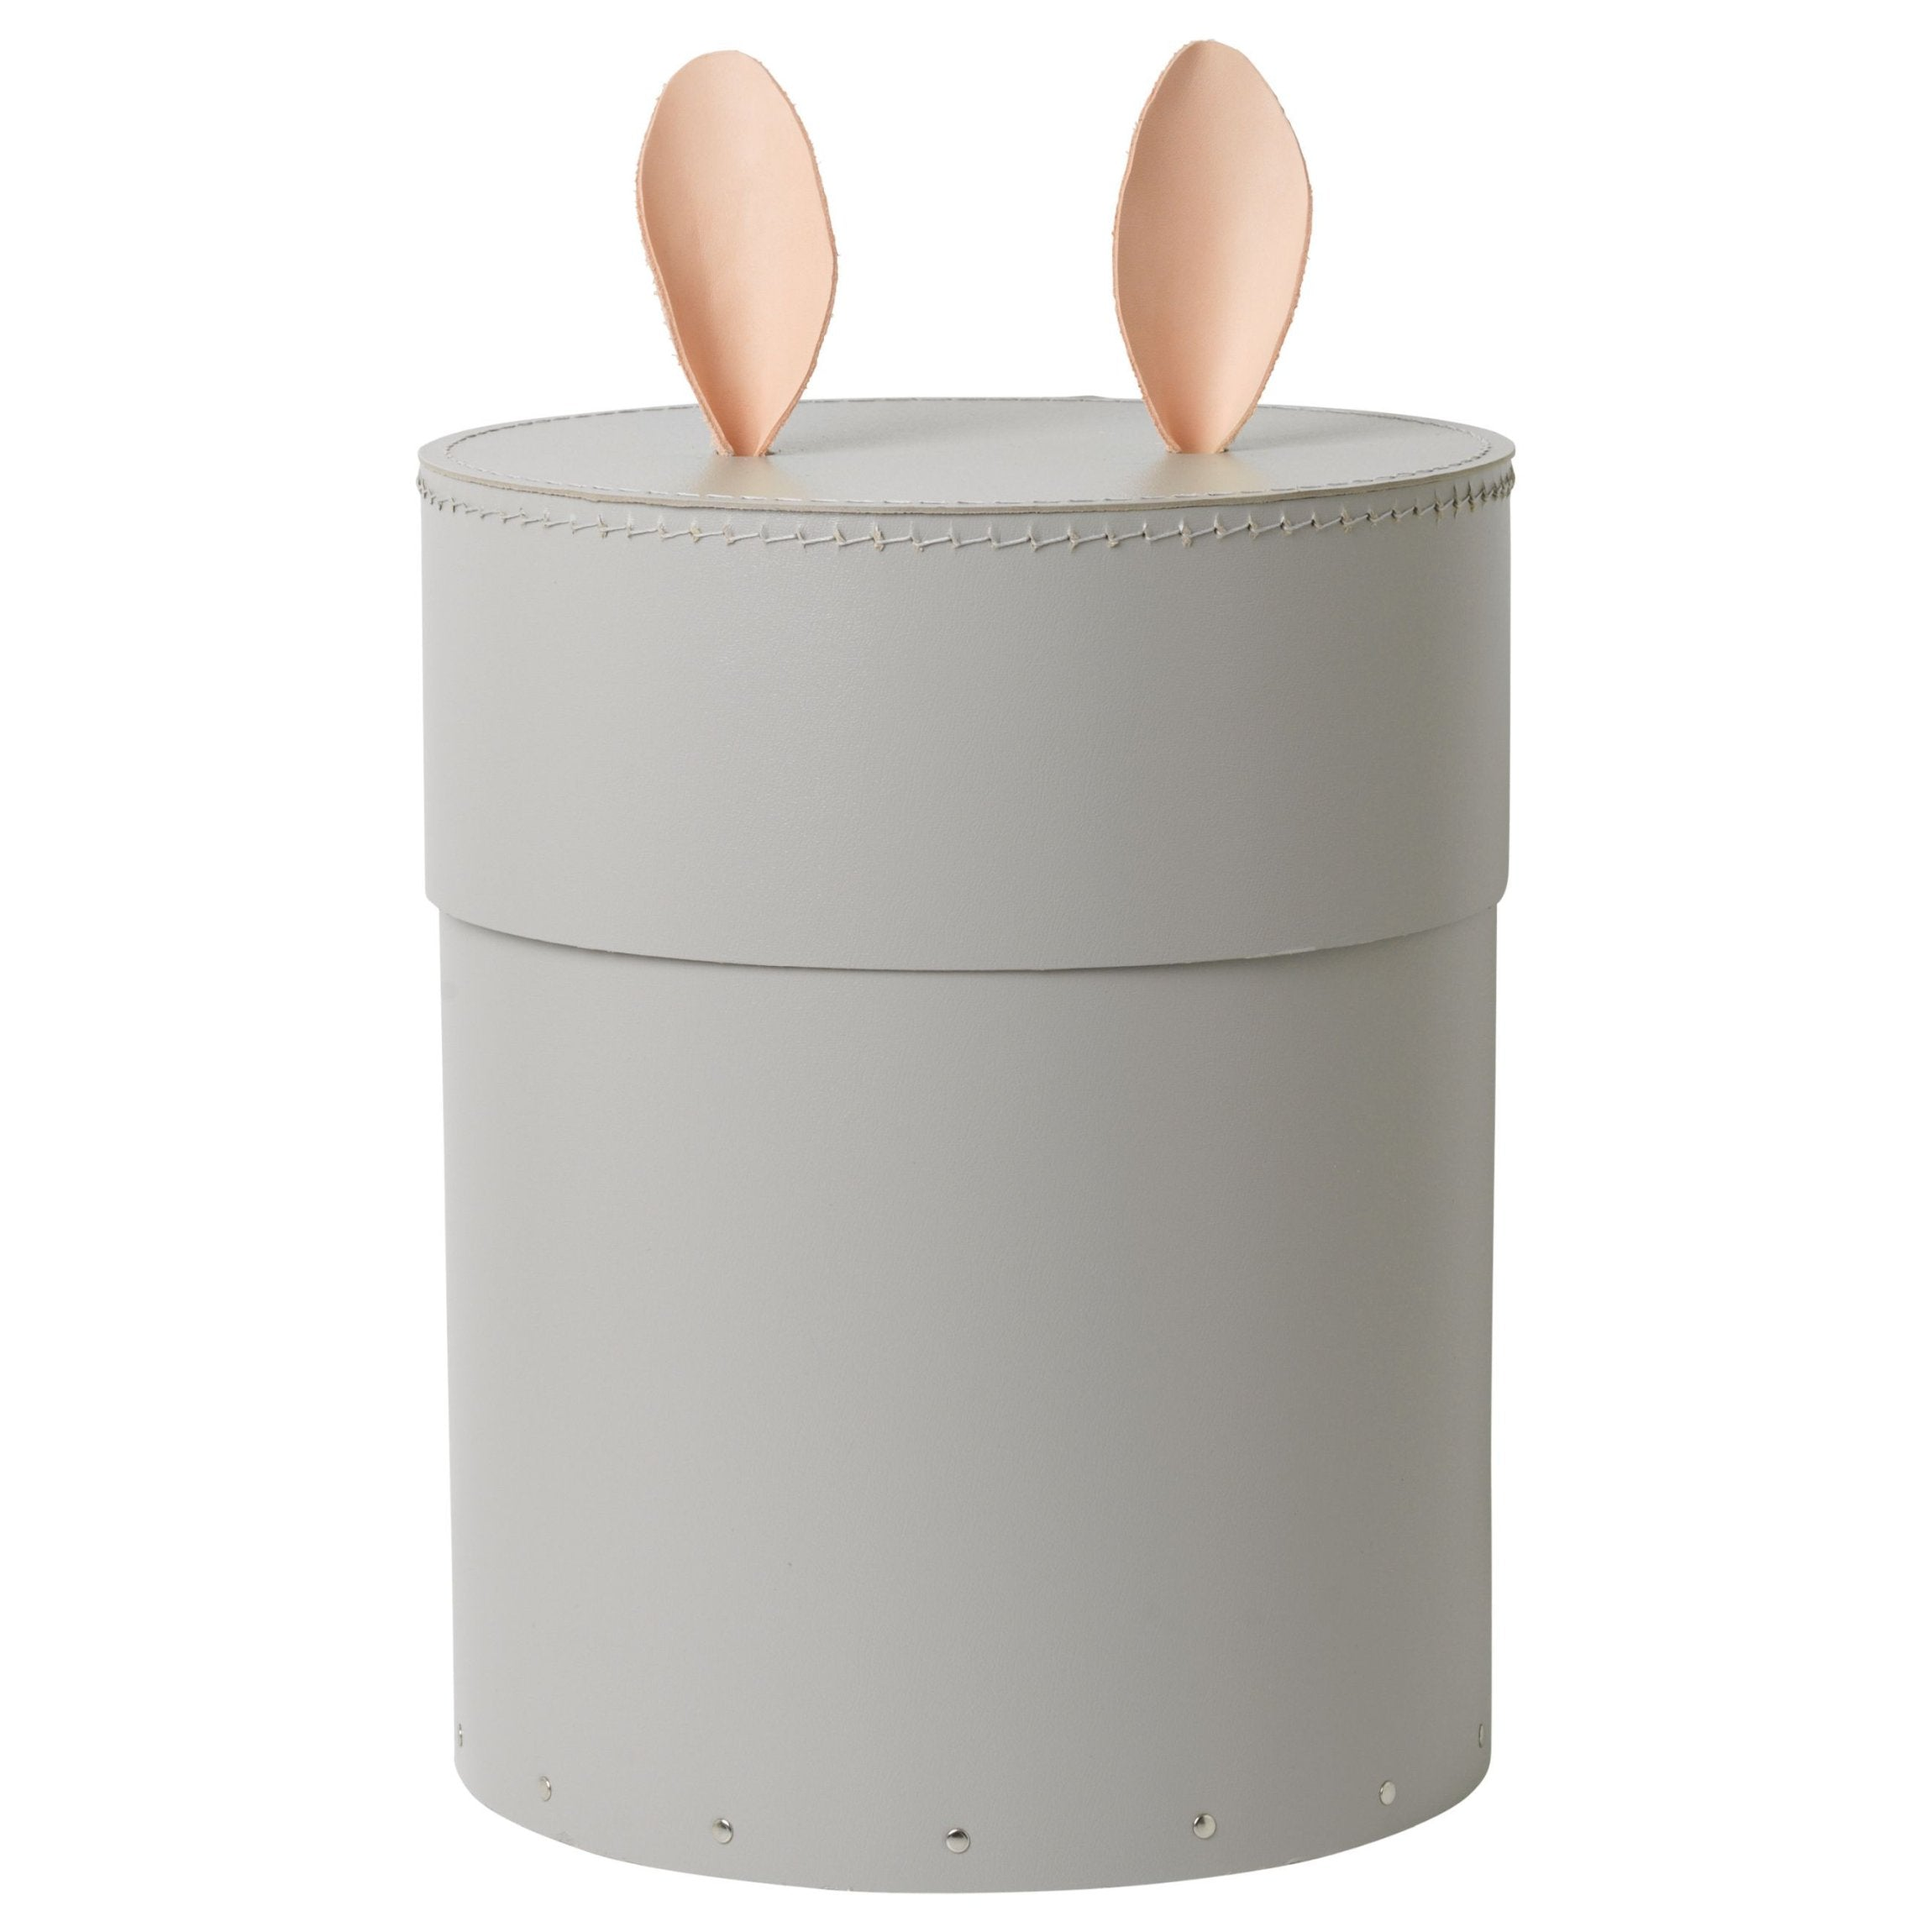 Rabbit Storage Box design by Ferm Living